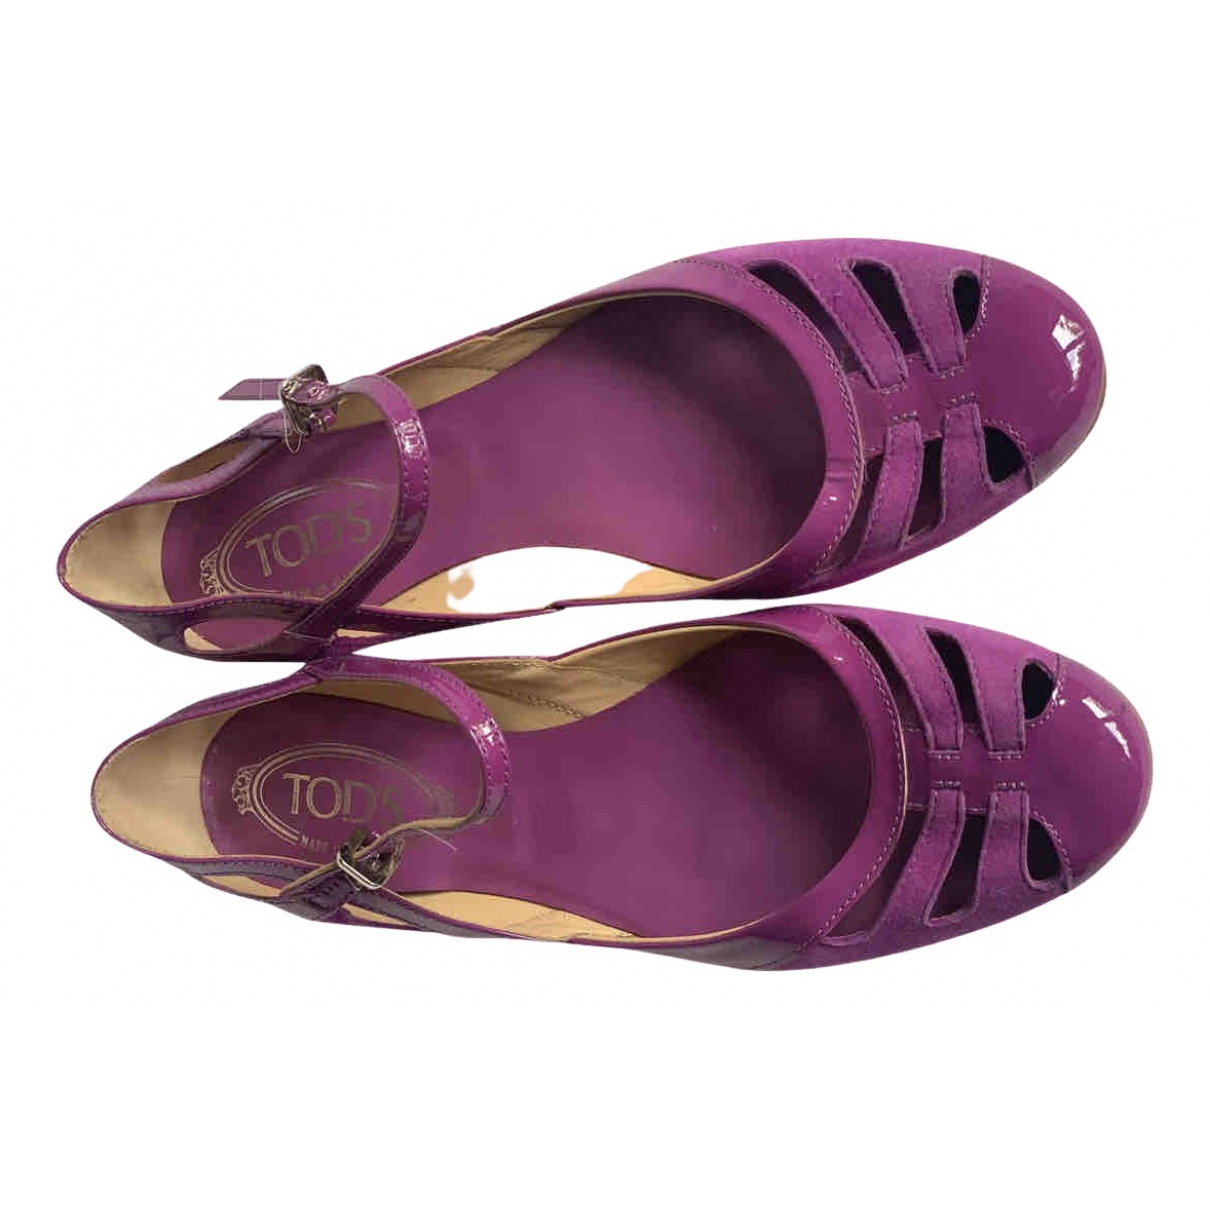 Tods \N Ballerinas in  Lila Lackleder